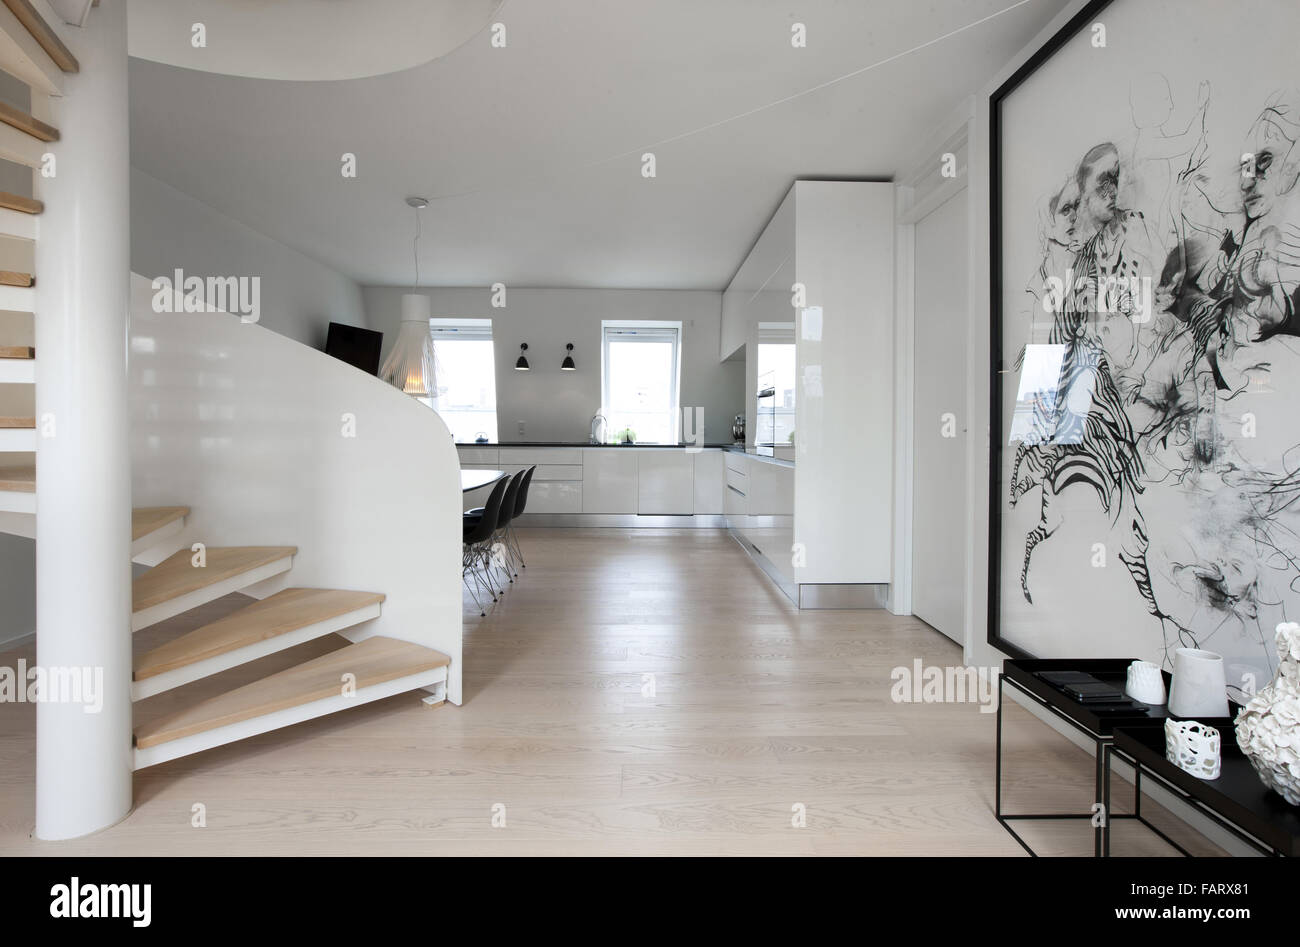 No nonsense, Modern apartment in Copenhagen. White walls and a wooden floor. Art pieces and minimalist style. Spiral - Stock Image